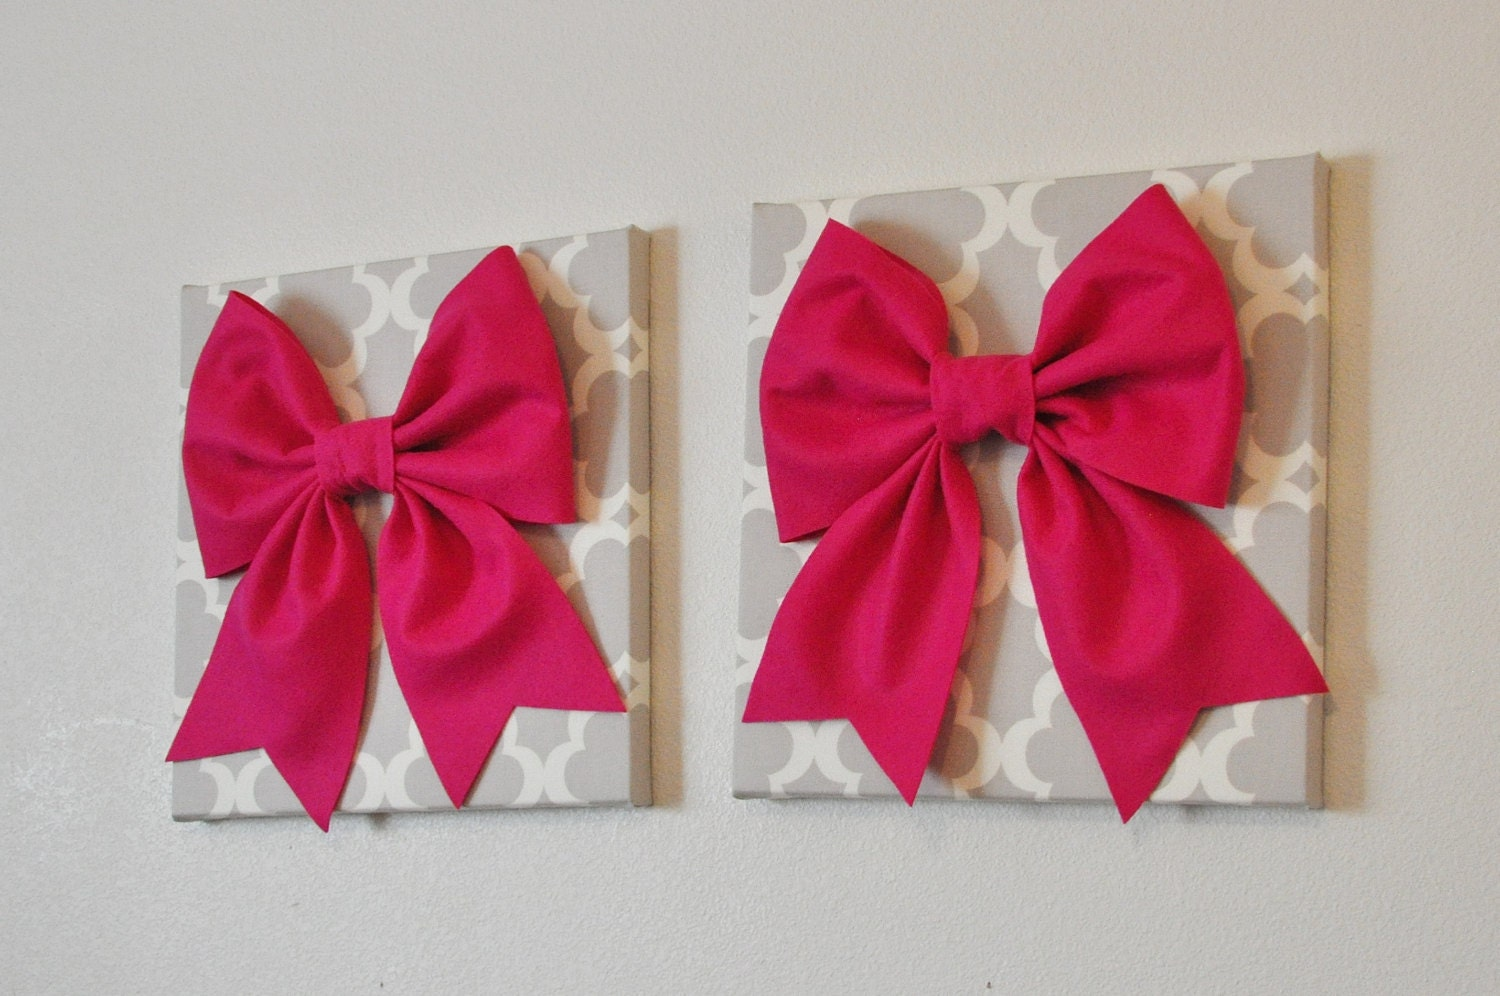 Home Decor TWO Bow Wall Hangings Large Hot Pink Bows on